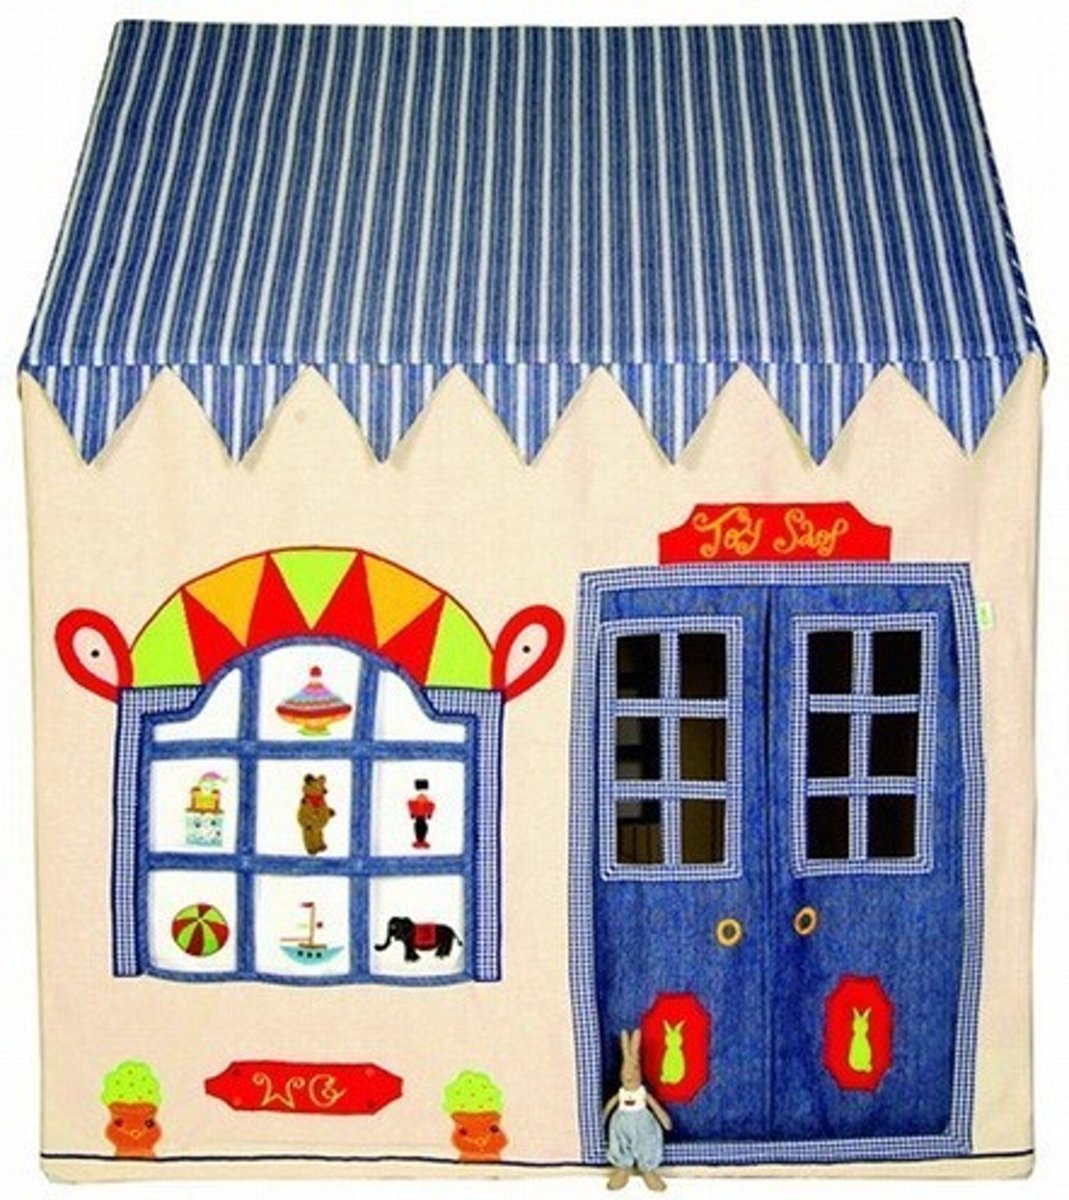 Win Green Toy Shop Playhouse (groot) + Floor Quilt